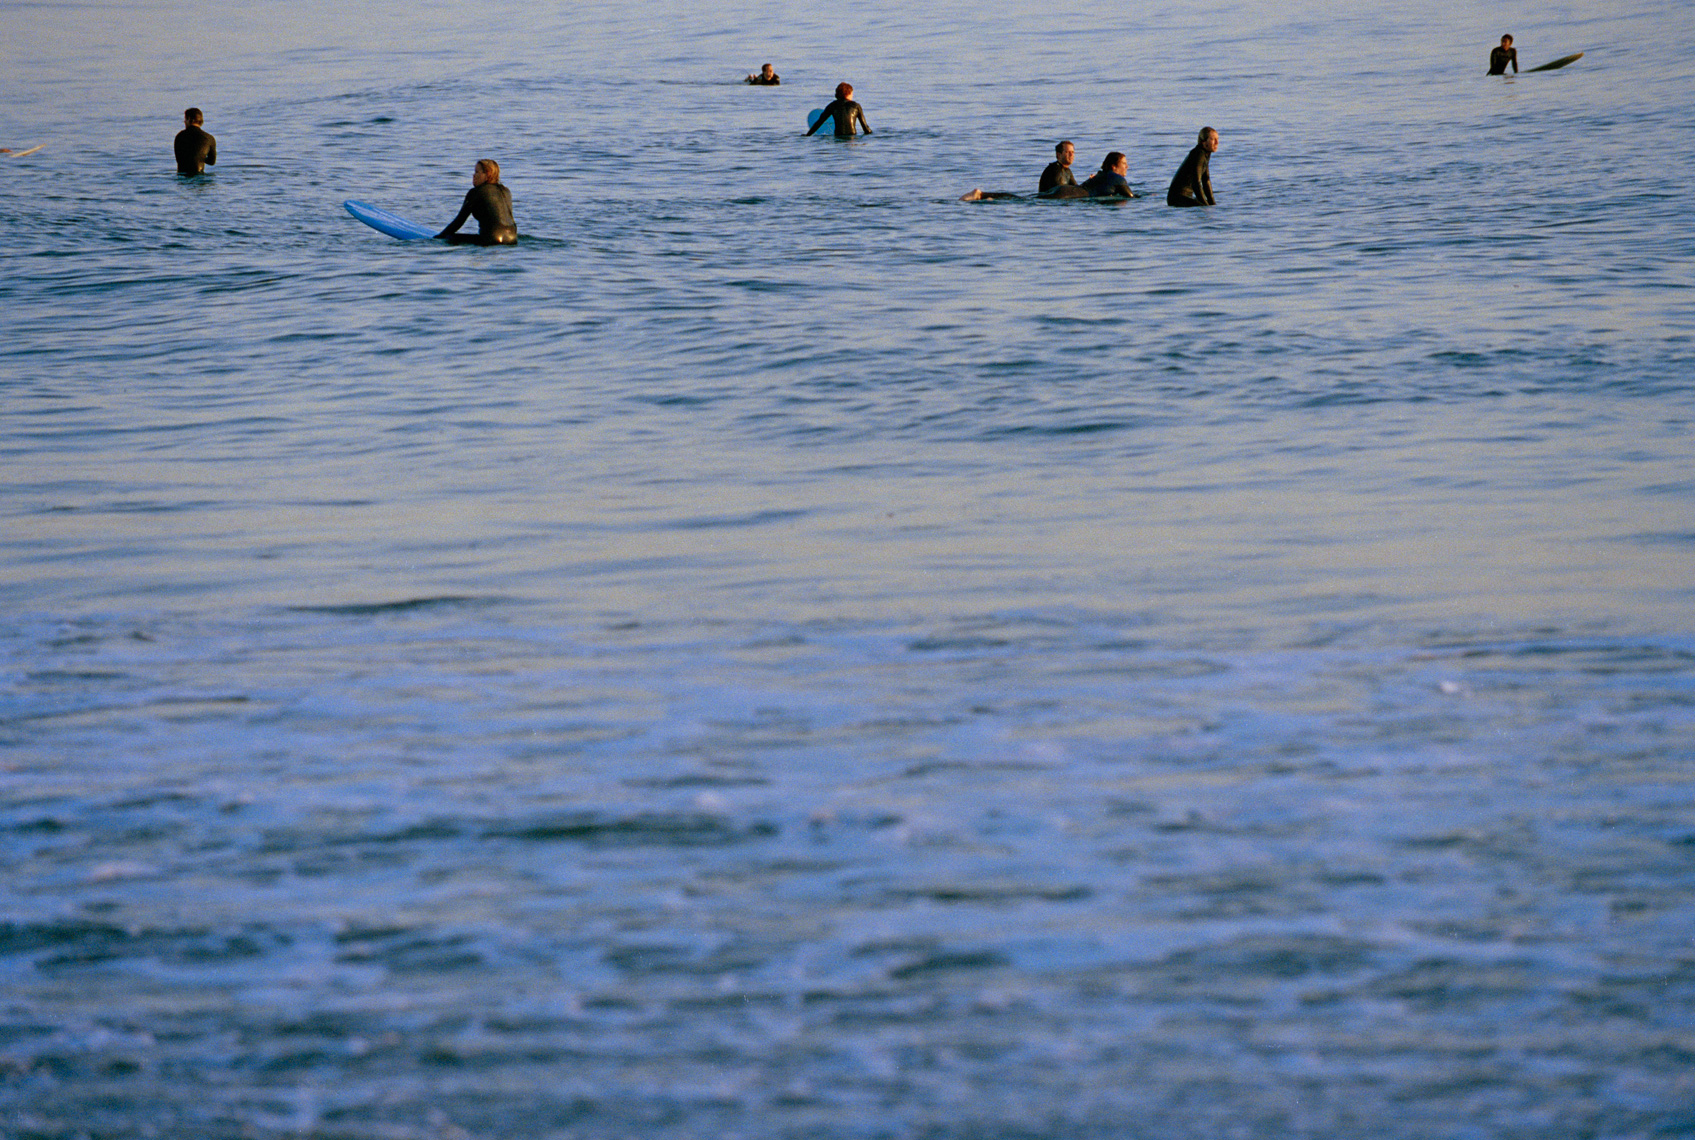 surfers-waiting-in-the-water-2009.jpg